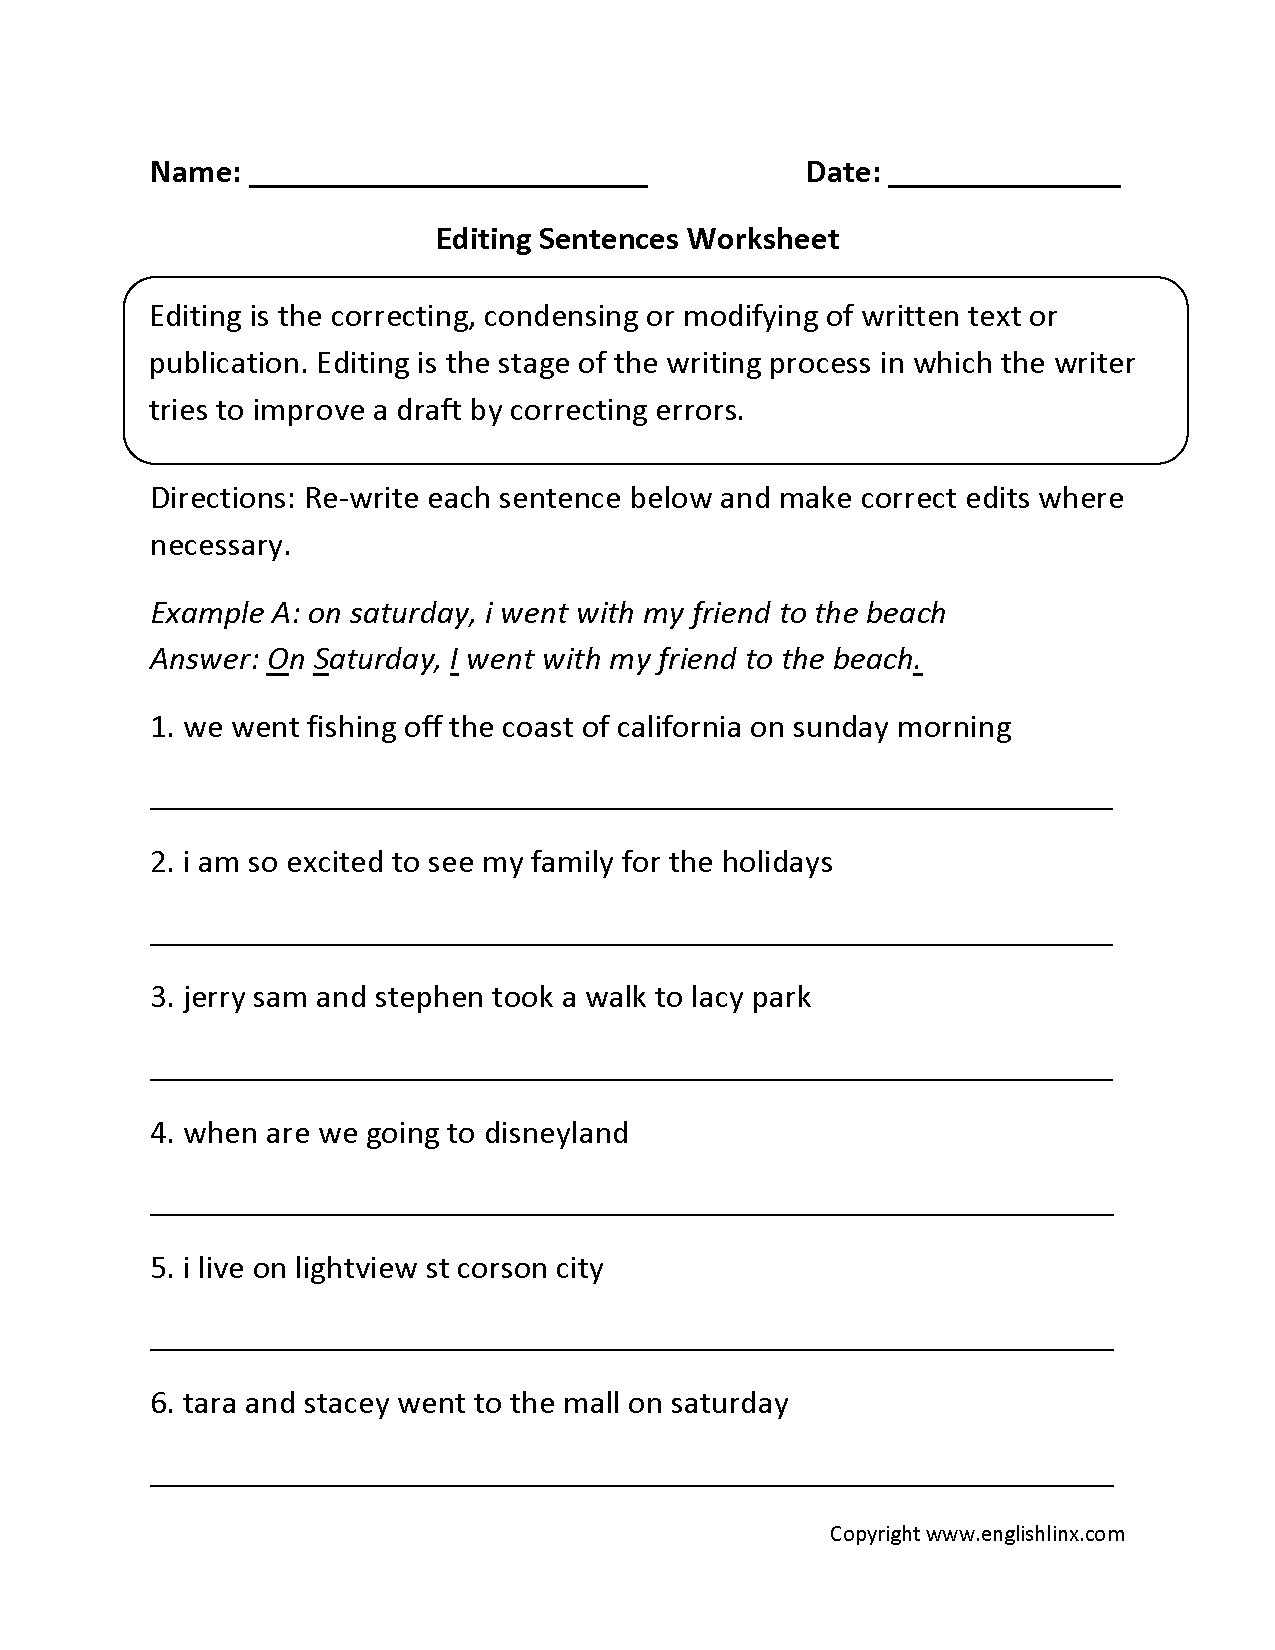 Editing Worksheets 3rd Grade Editing Worksheet Sentece